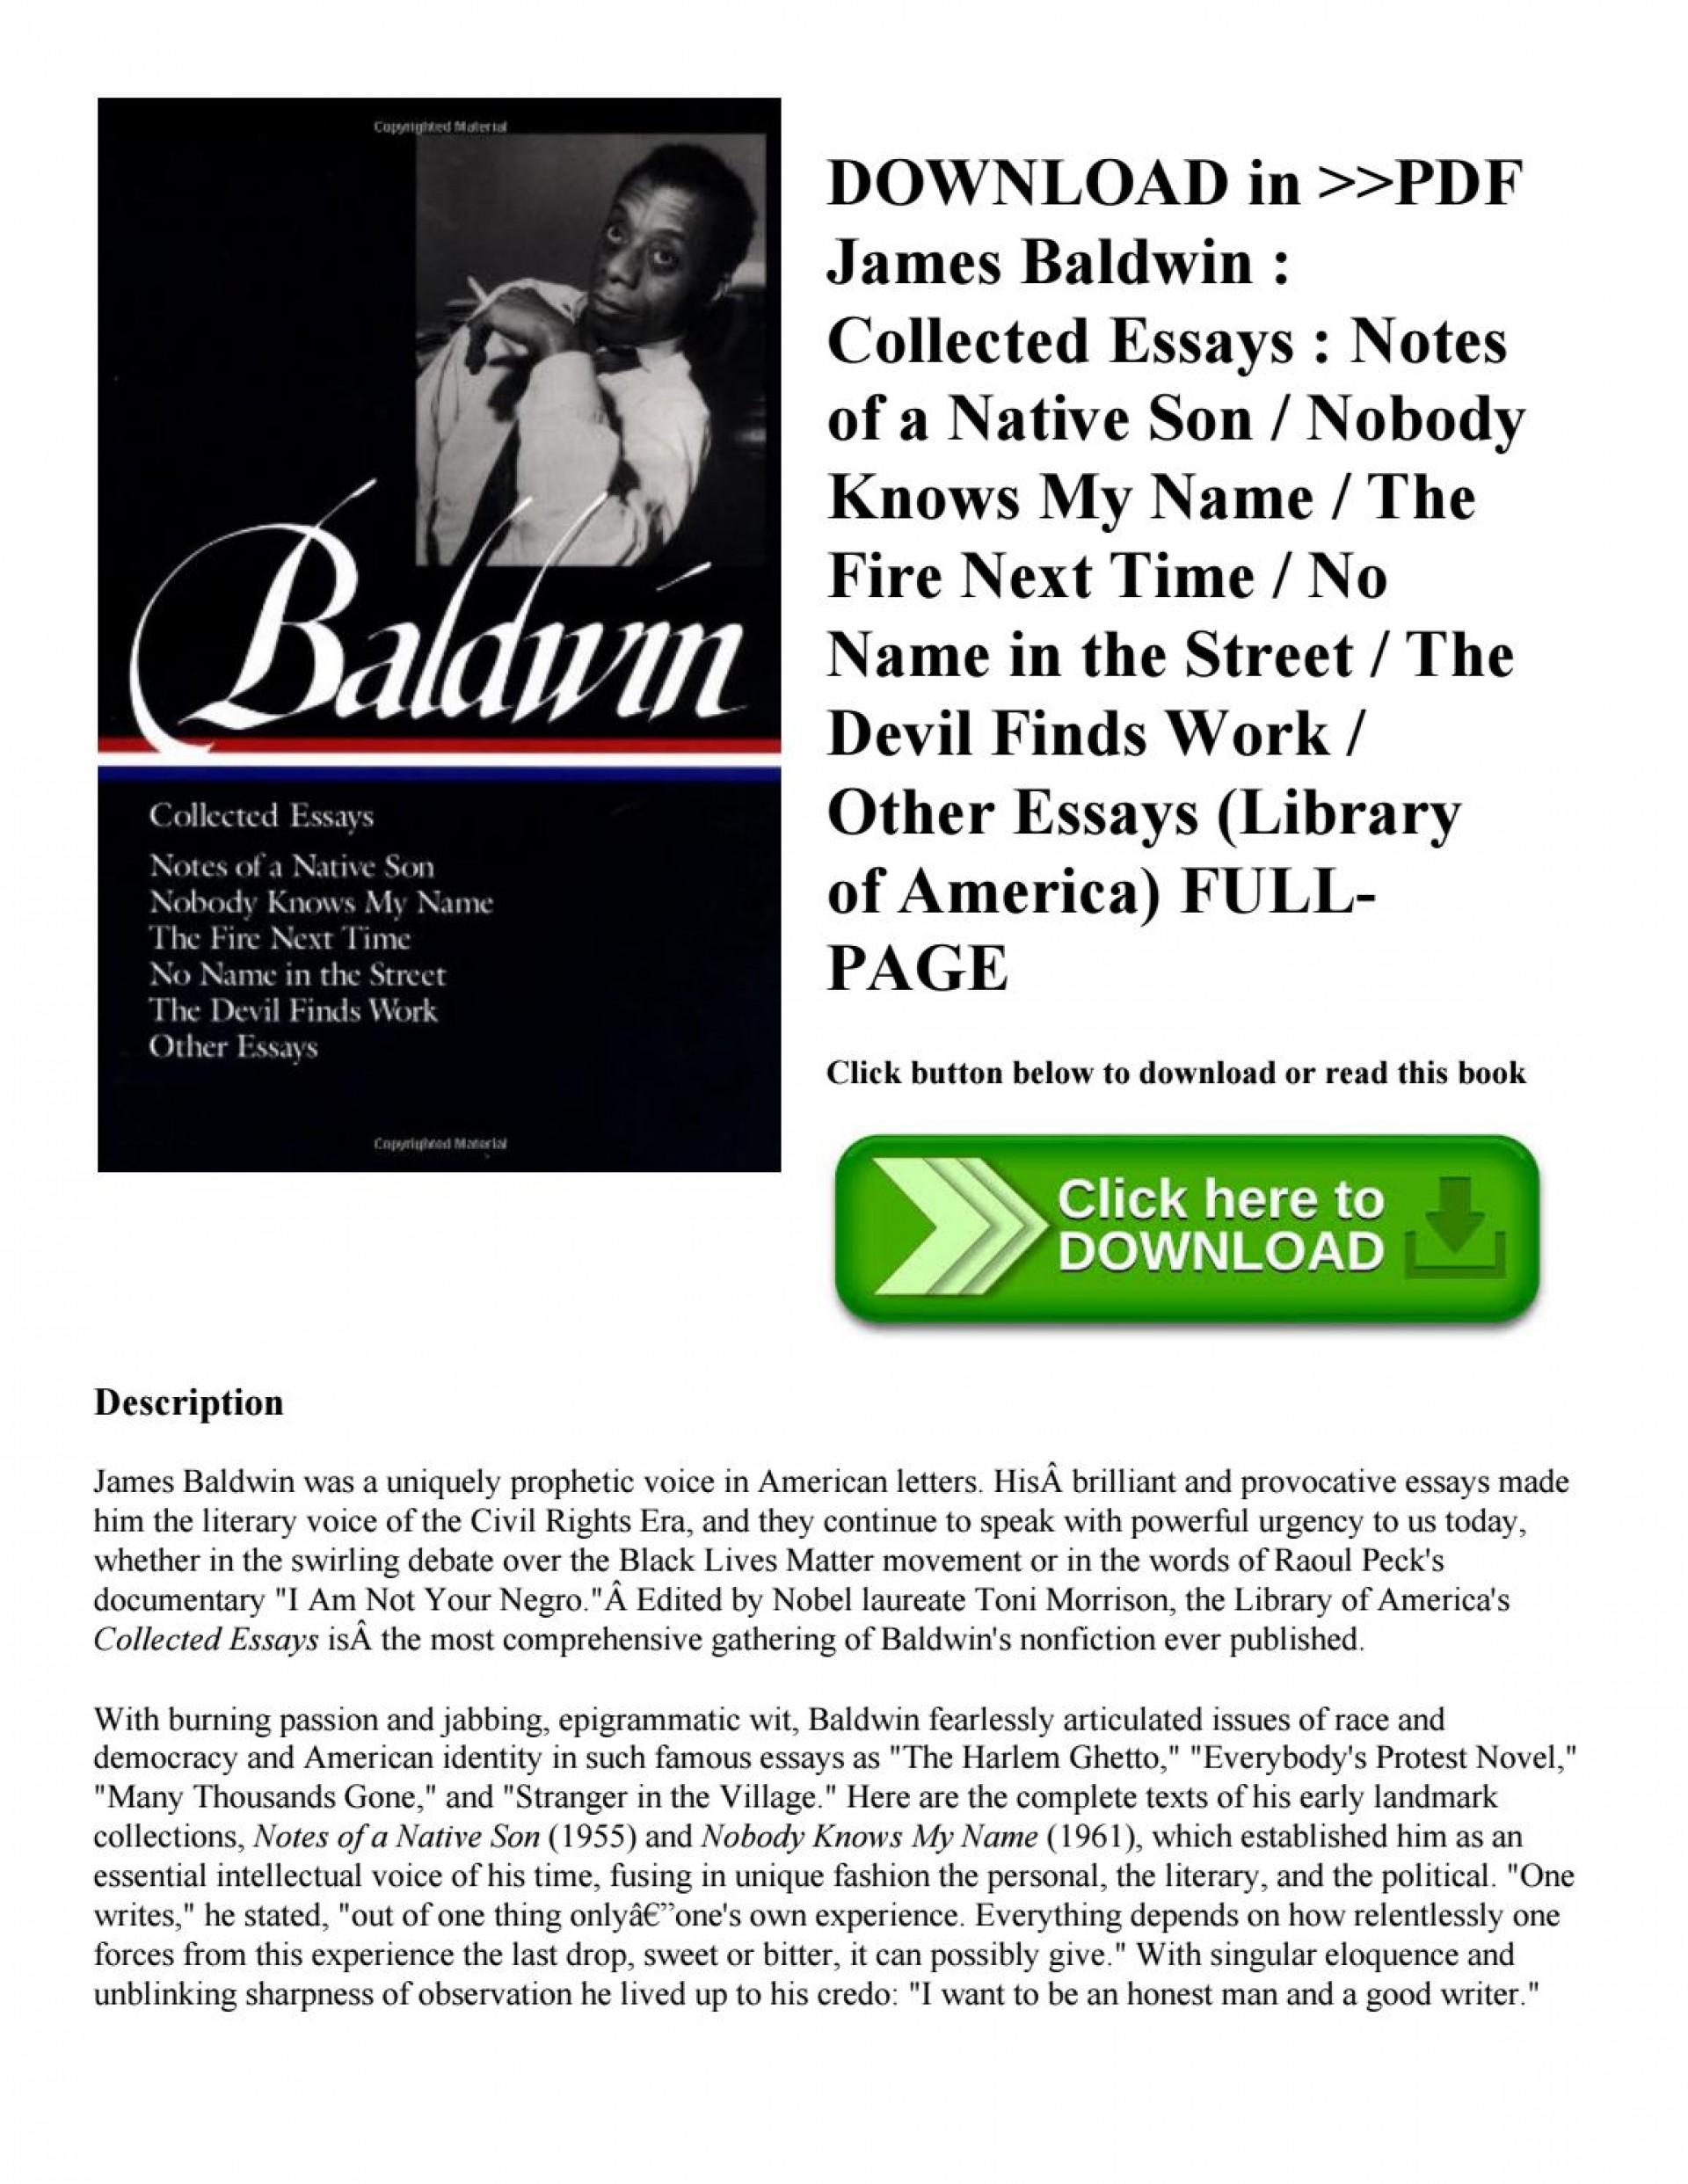 005 Essay Example James Baldwin Collected Essays Page 1 Wondrous Table Of Contents Ebook Google Books 1920